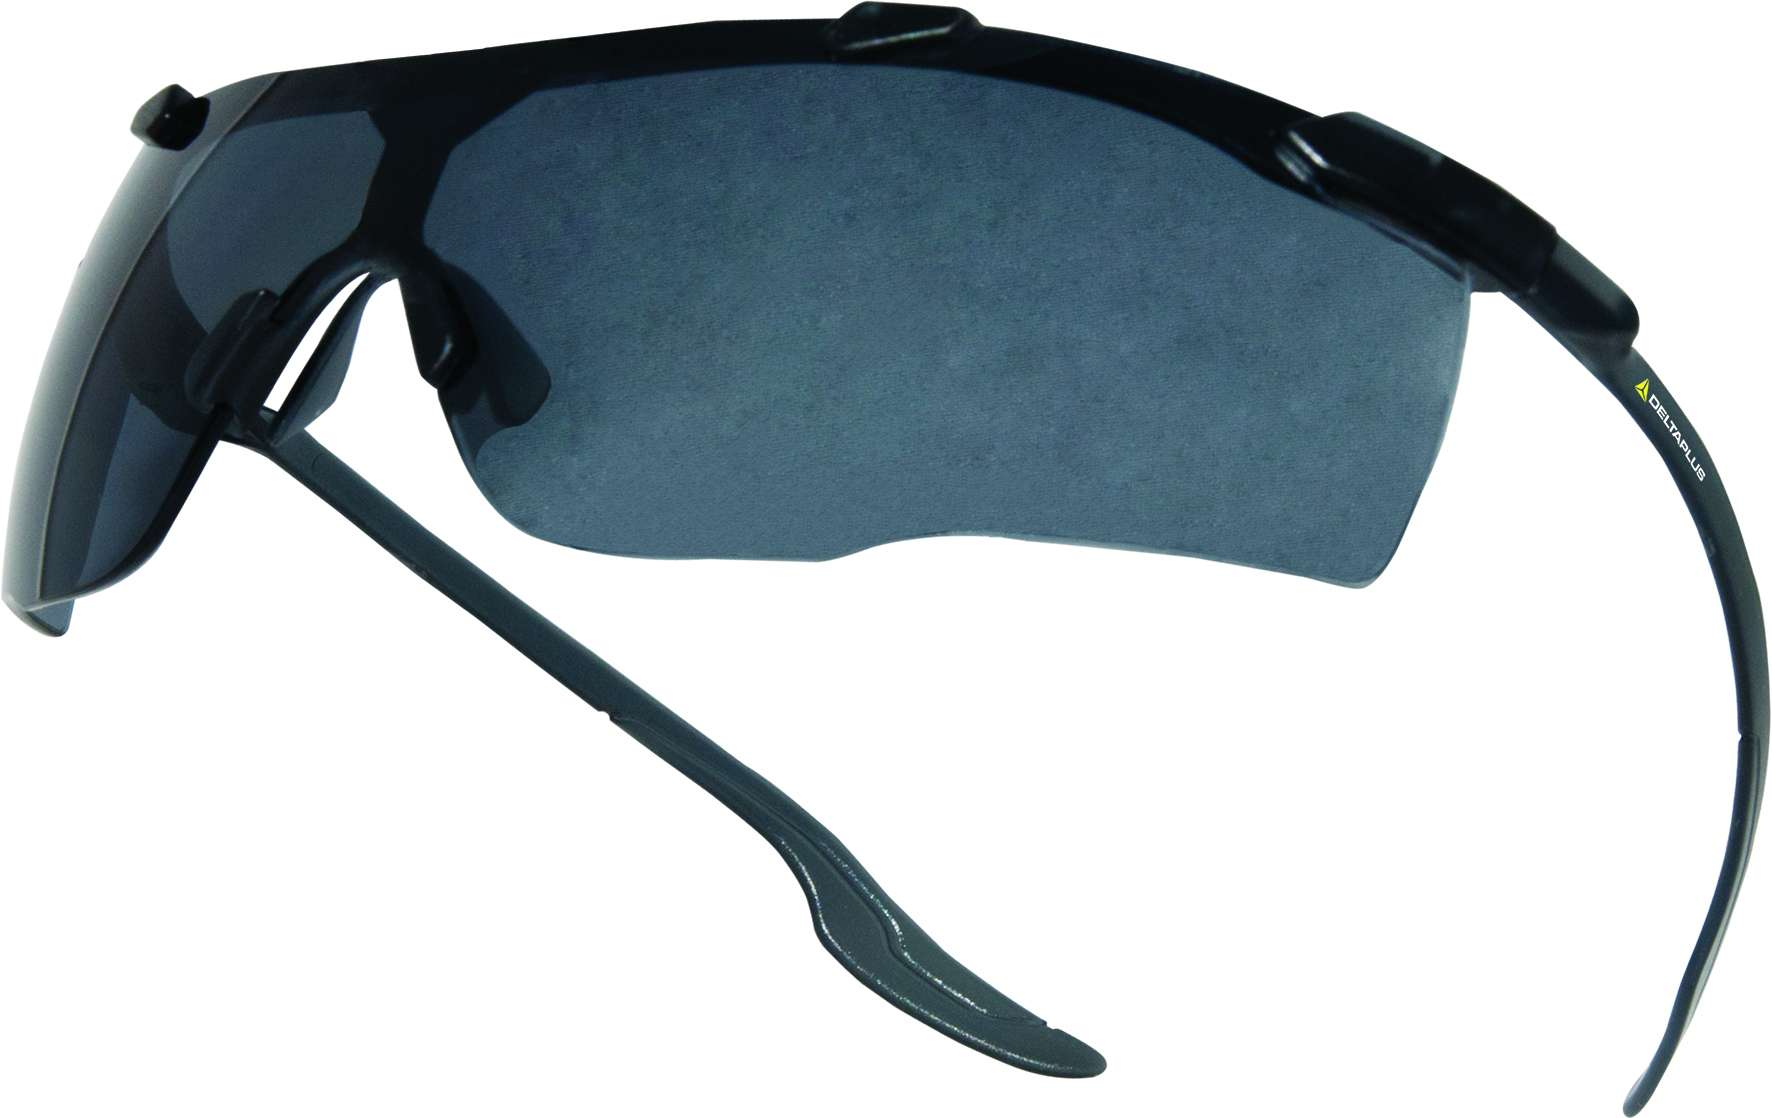 GAFAS DE POLICARBONATO ANTIESTATICAS ANTIREFLECTANTE - AM - AS - UV400